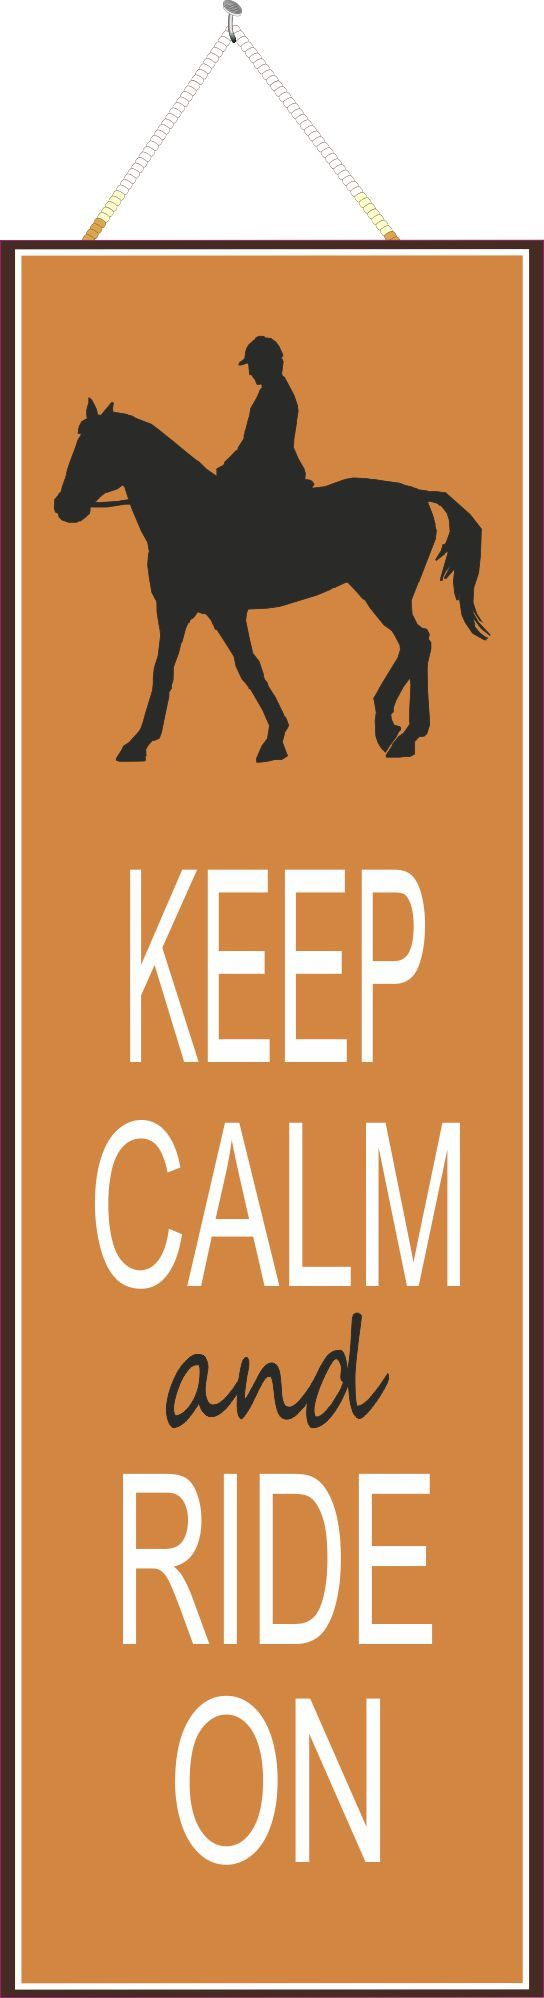 Keep Calm and Ride On Inspirational Quote Sign with Horse Silhouette